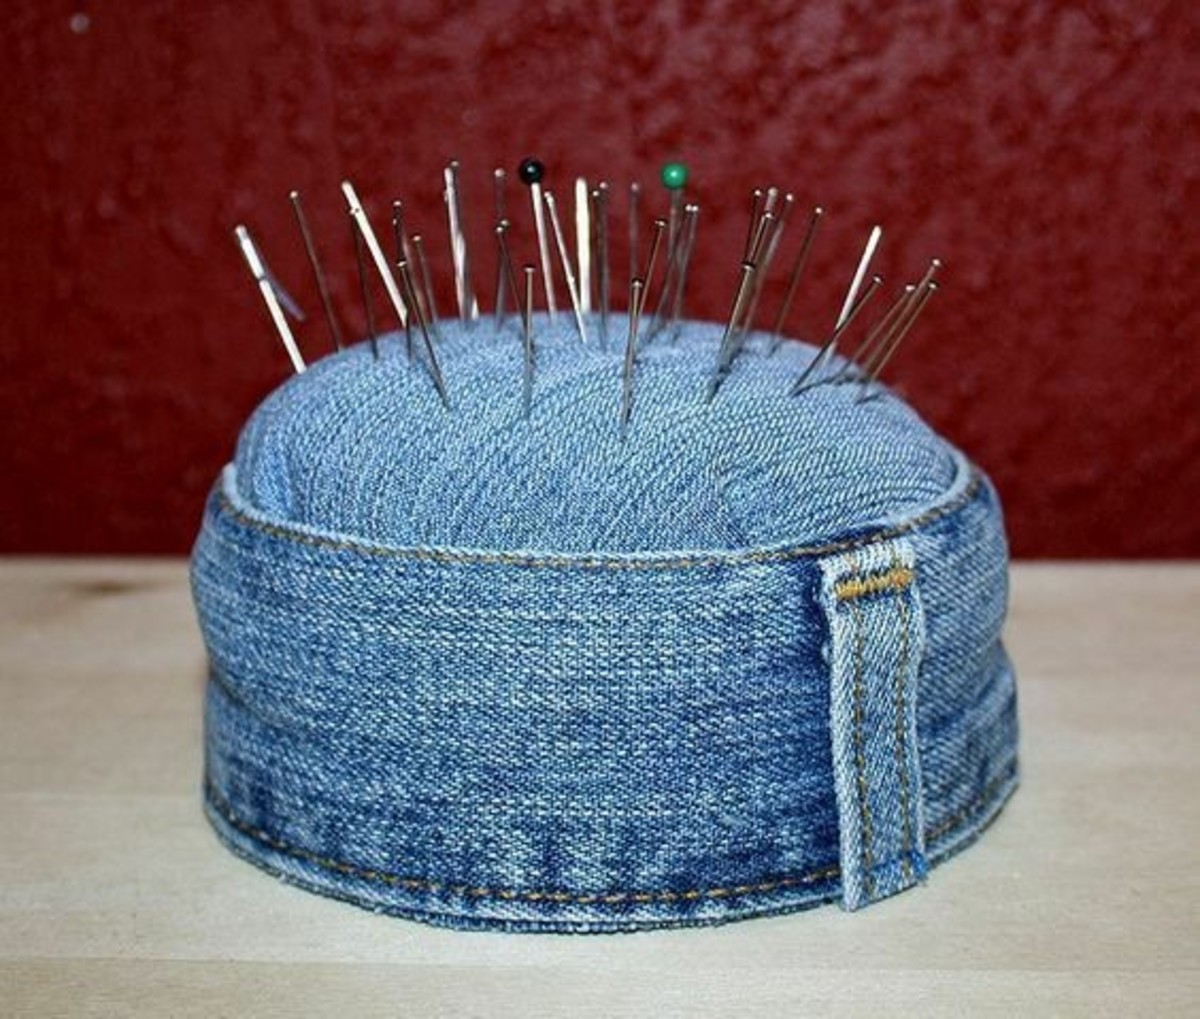 Items for the home: This is a very serviceable pin cushion, made from repurposed jeans. When stuffed with steel wool, it should offer decades of use, and keep pins honed.